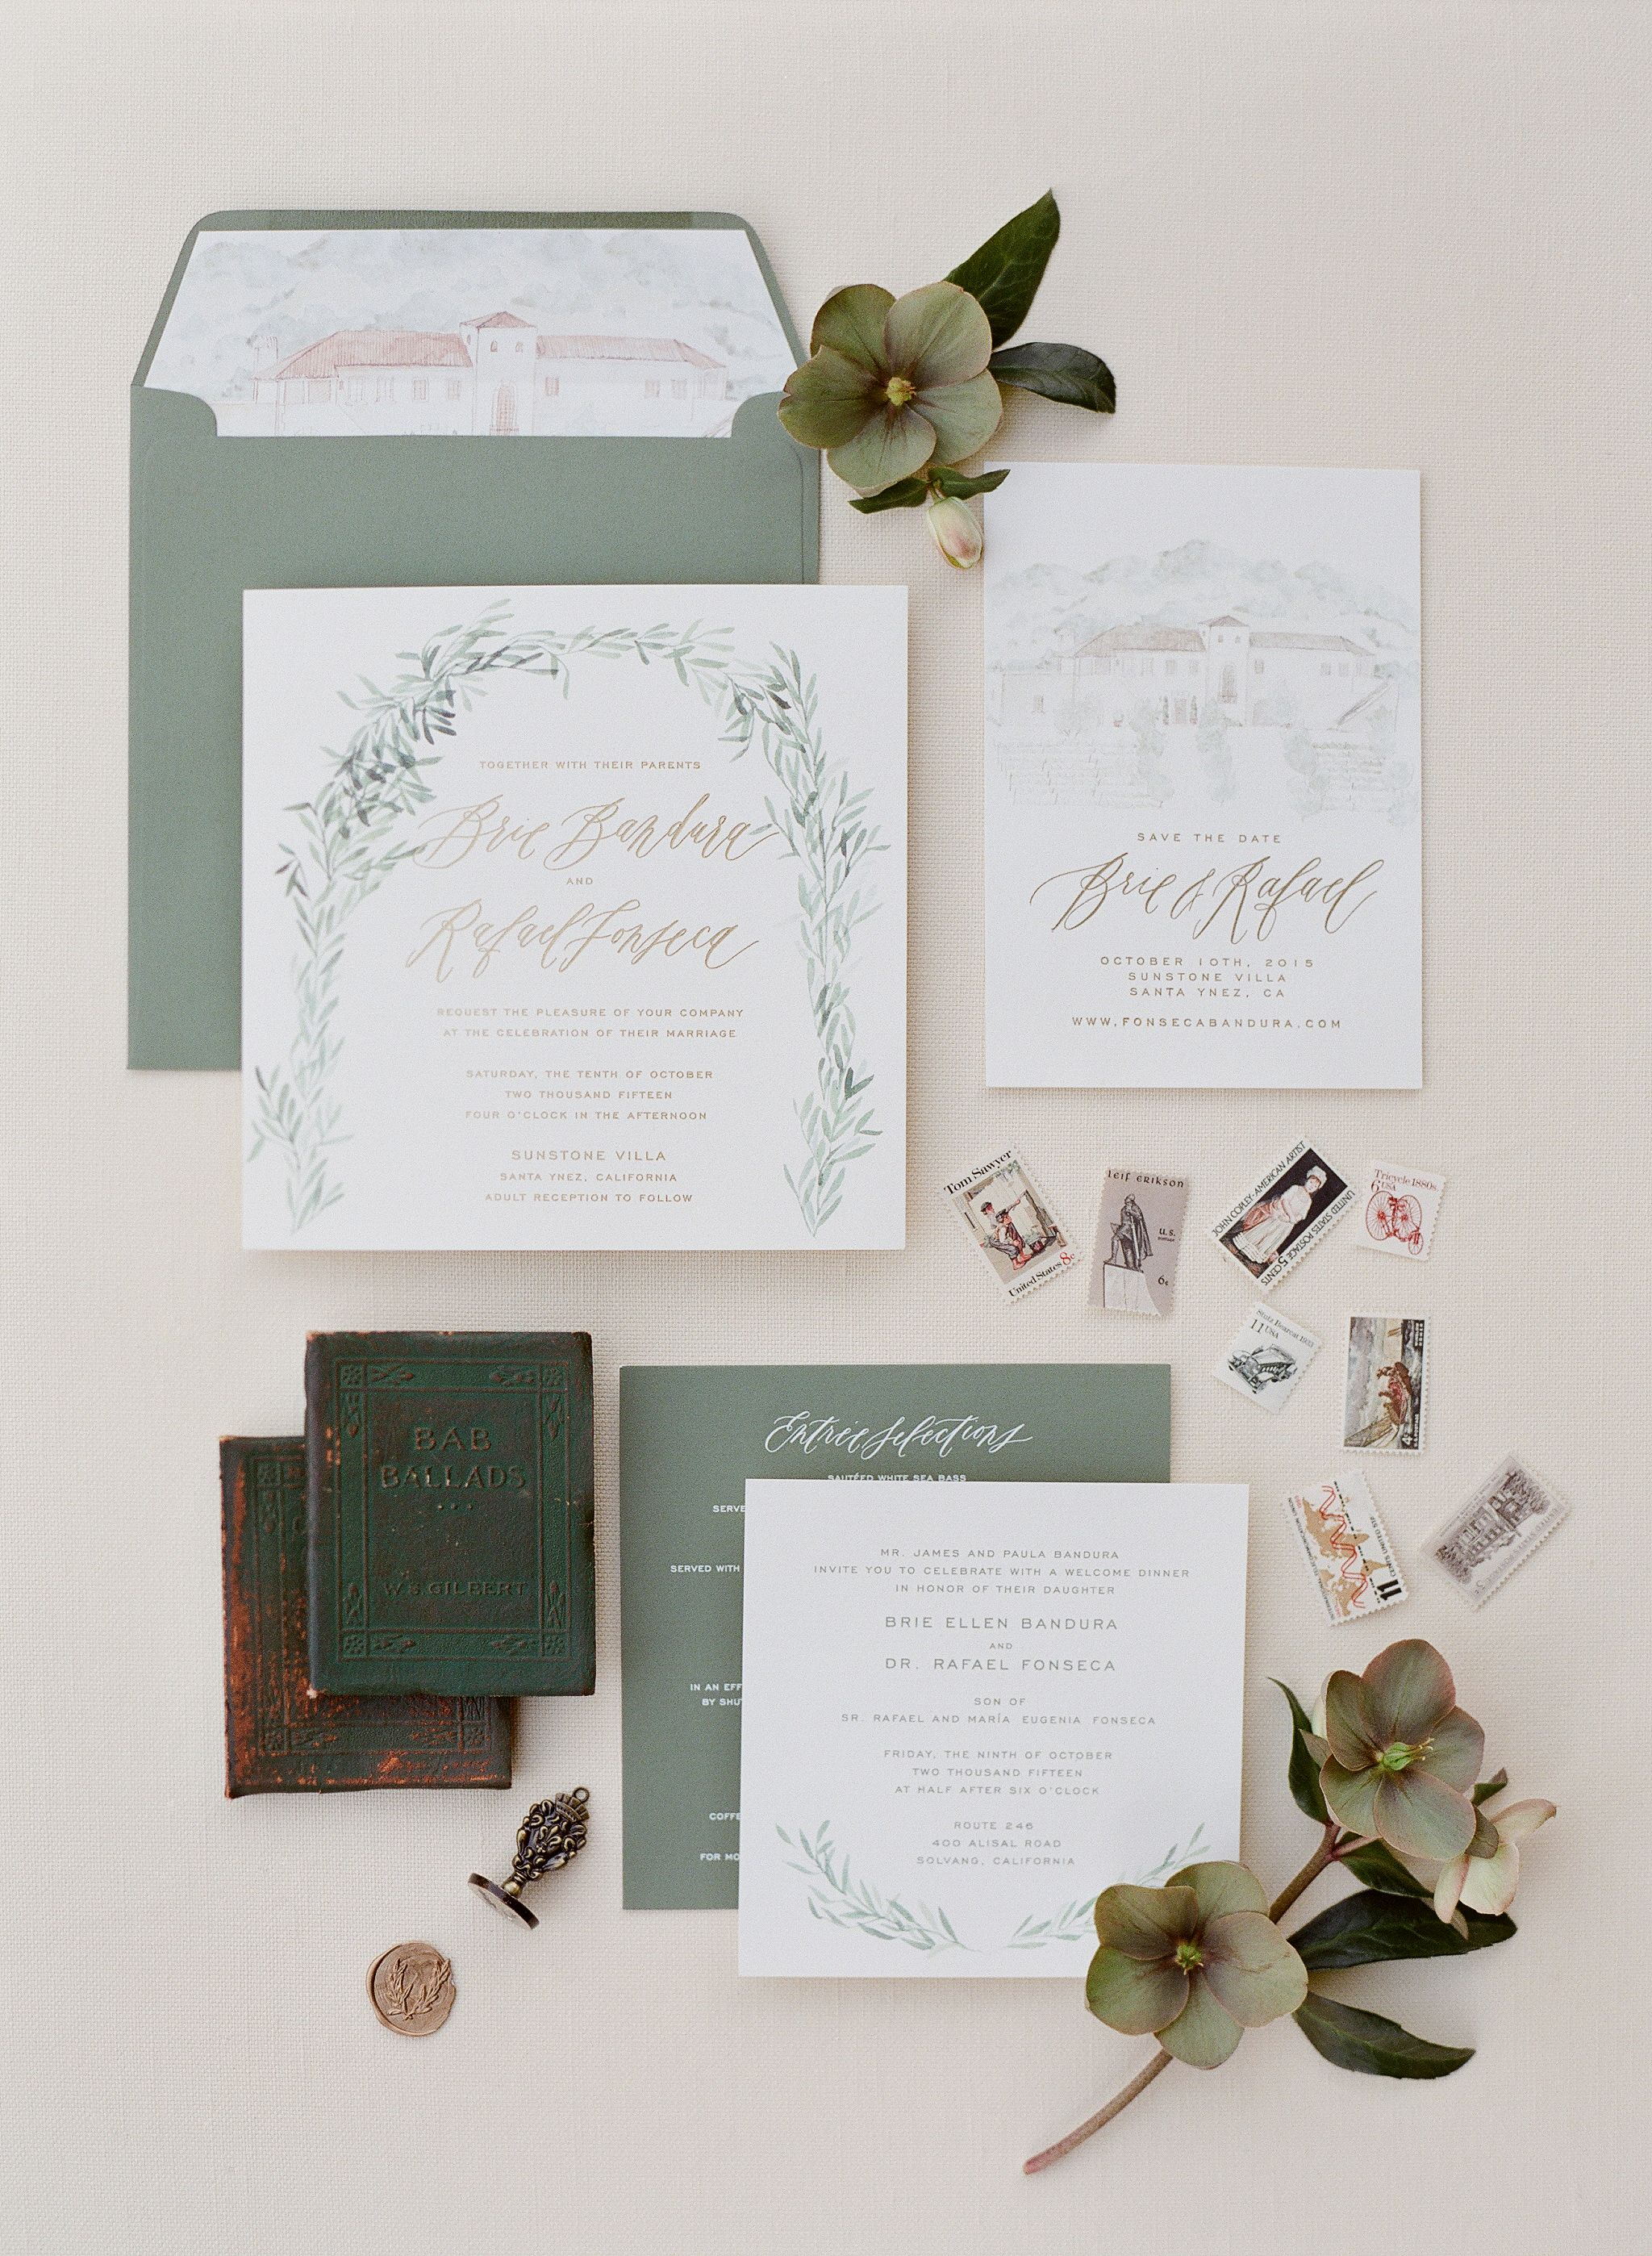 Calligraphy and Design by: Written Word Calligraphy // Watercolor Wedding Invitations // Sunstone Winery Wedding // Destination Weddings // Details // Vintage Stamps // Sage Olive Colors